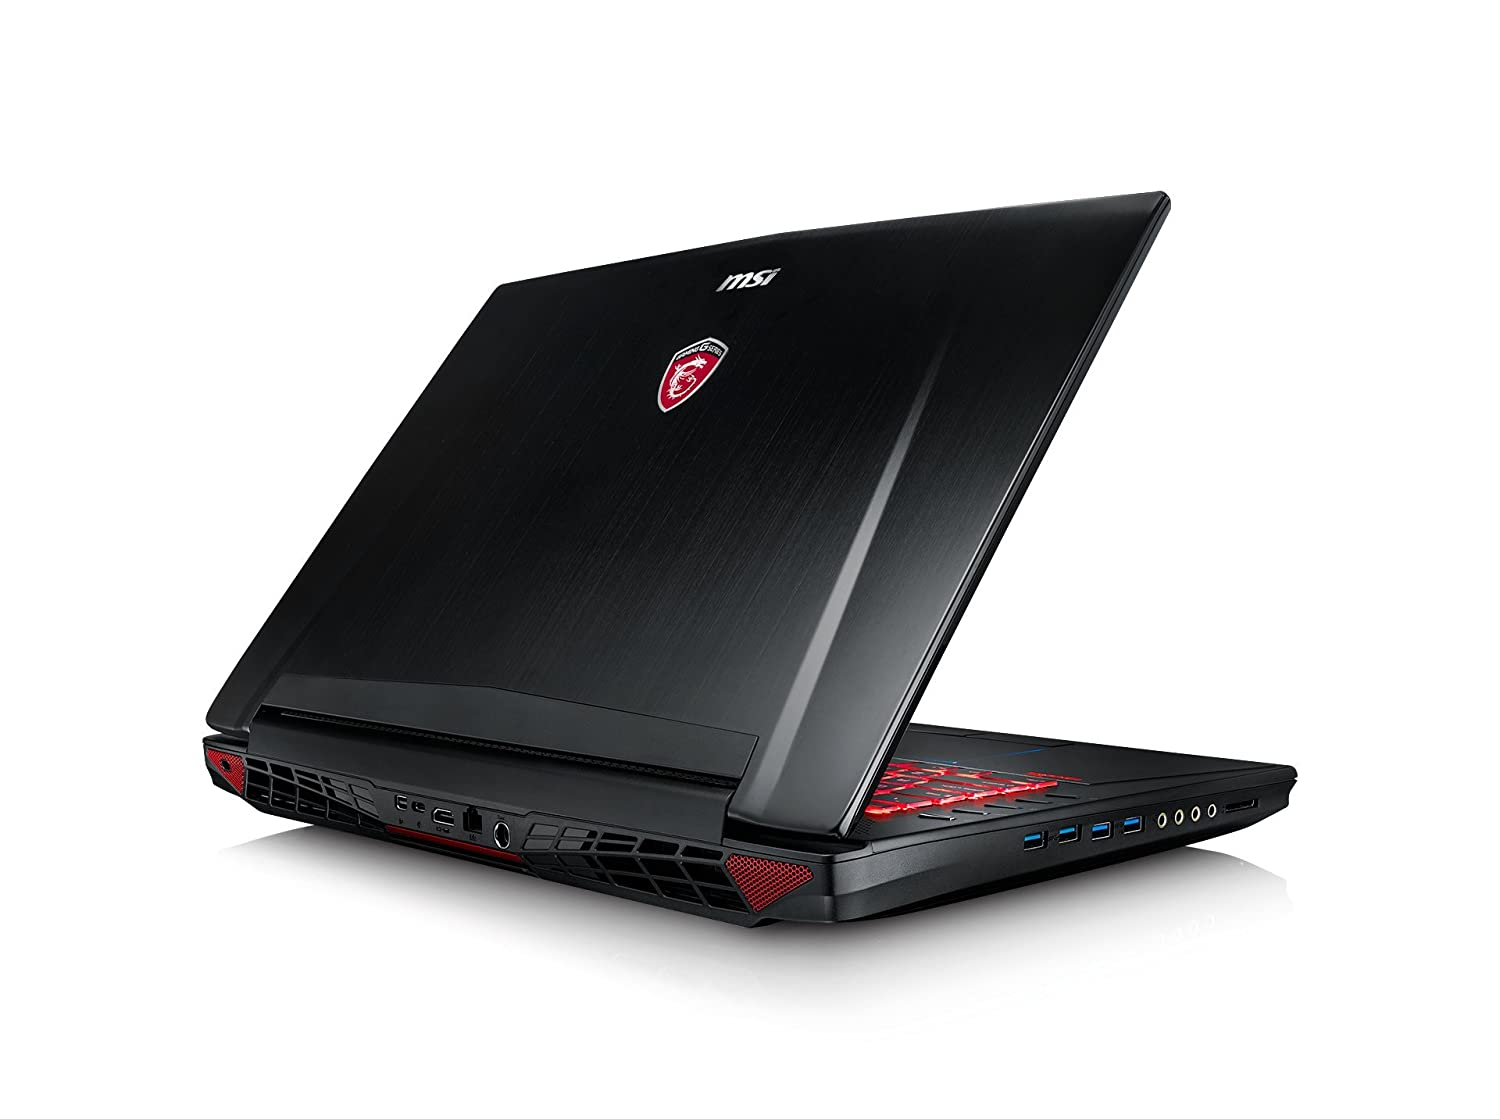 MSI GT72S-6QEG16SR421BW 1 17 Zoll Gaming Notebook